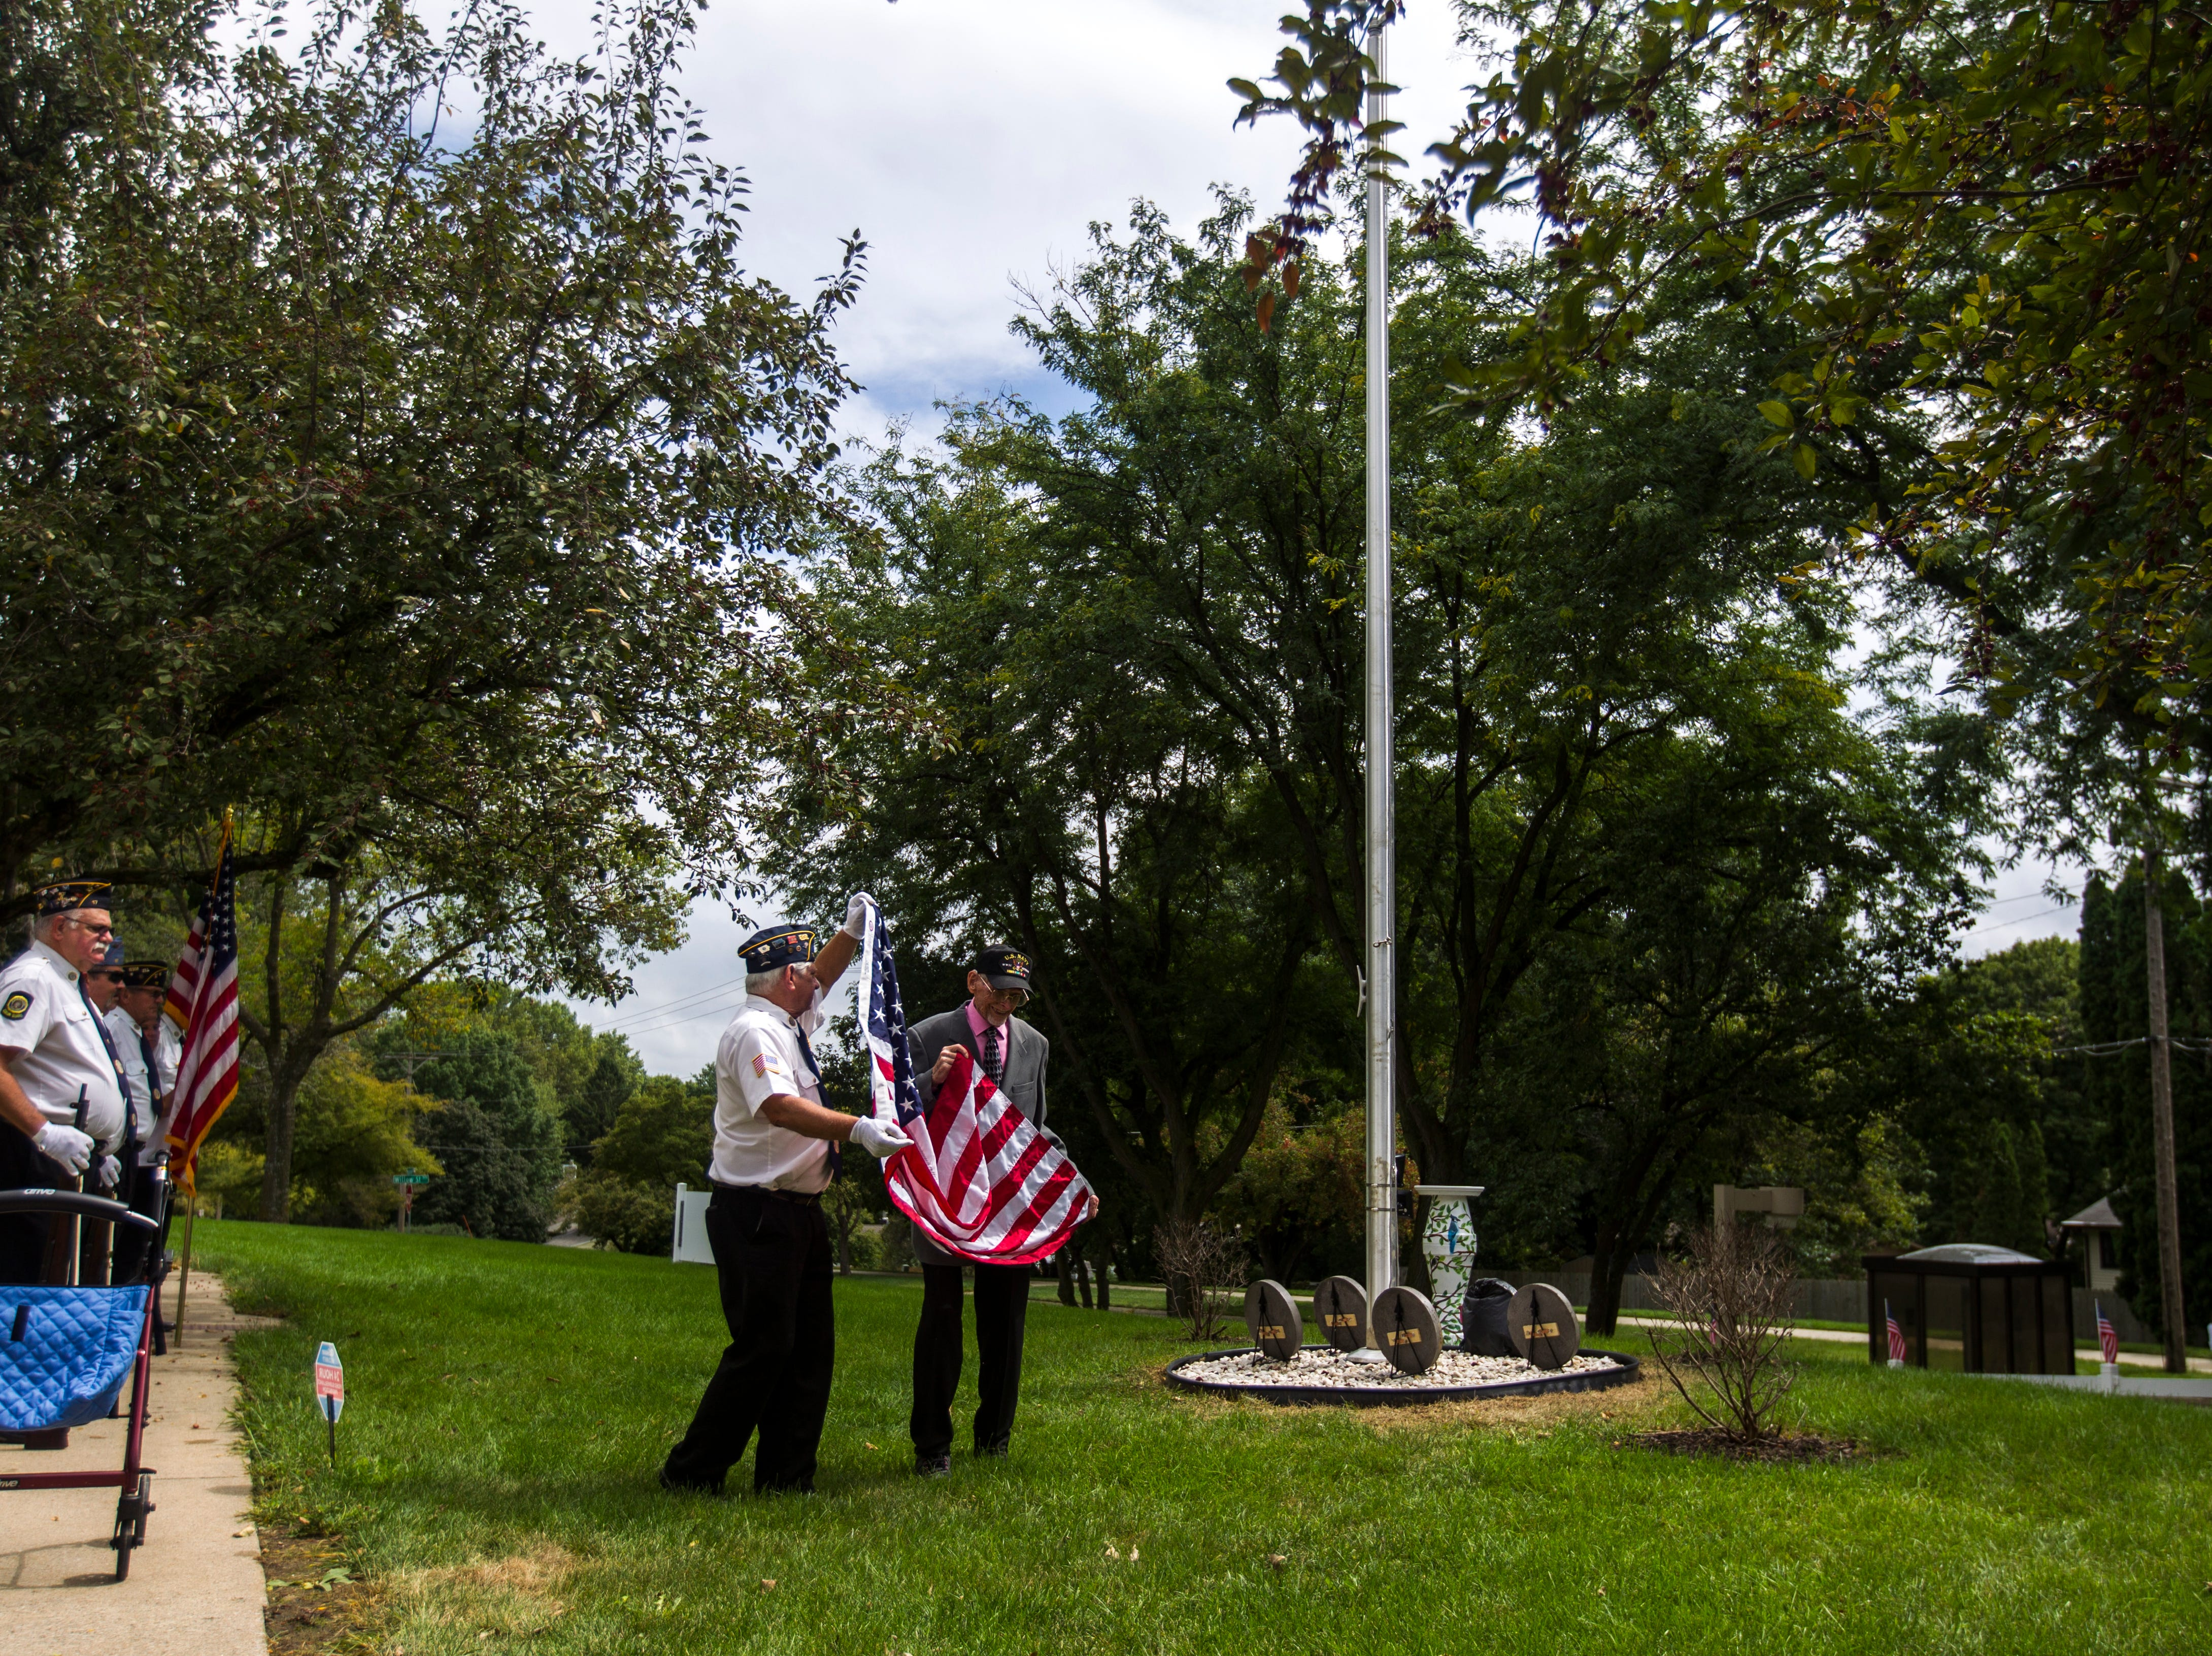 World War II U.S. Navy veteran Russell H. Ware (left) helps American Legion Post 721 honor guard Sgt. of arms Tom Travis raise a flag during a dedication ceremony on Monday, Sept. 3, 2018, at the Autumn Park Apartments in Iowa City.